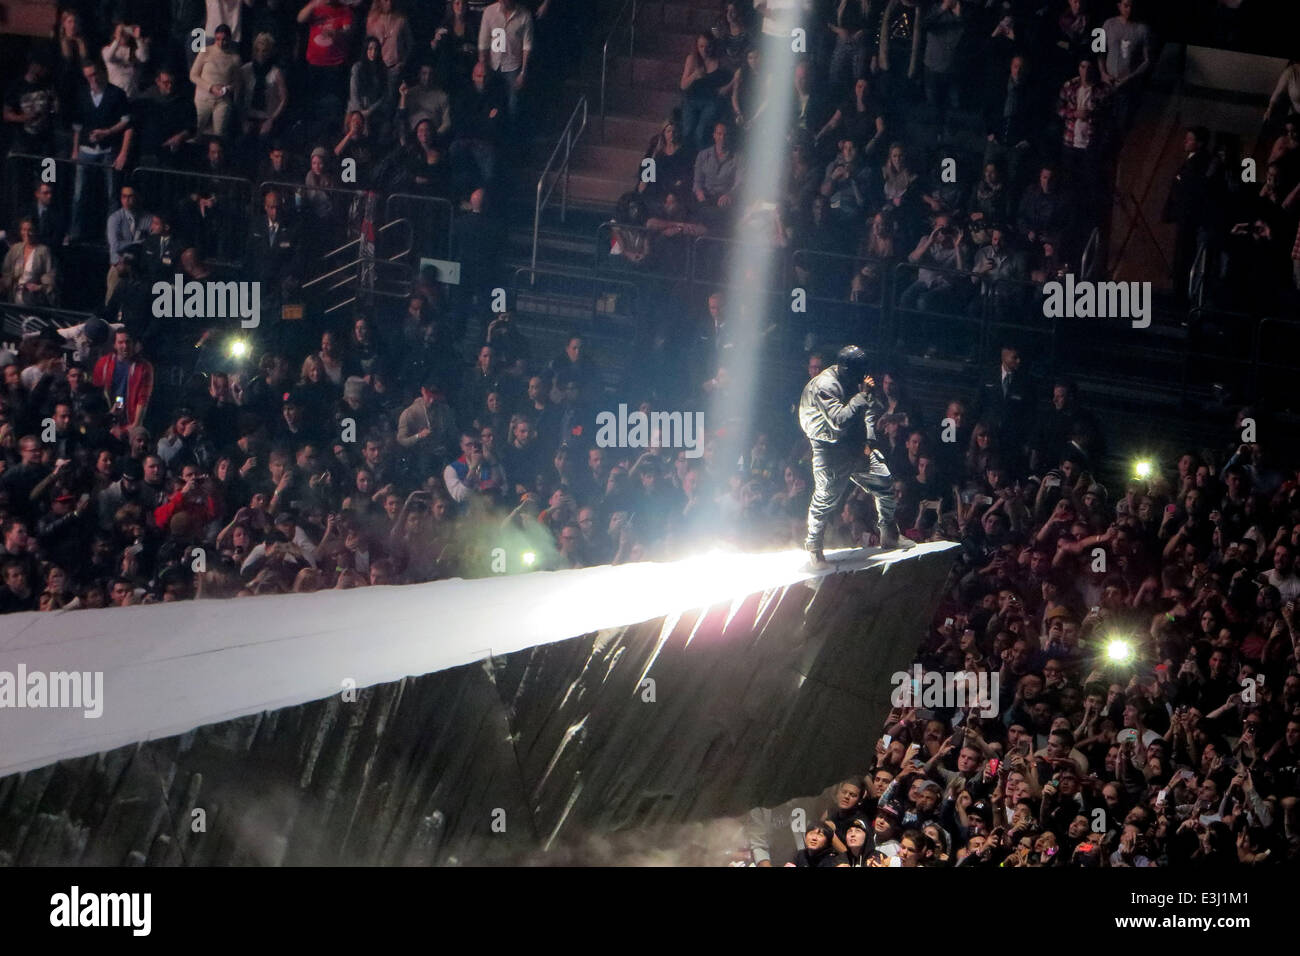 Kanye West Performs To A Sold Out Crowd At Madison Square Garden As Part Of  His U0027Yeezusu0027 Tour. The Eccentric Rapper Performed The Entire Concert  Wearing A ...